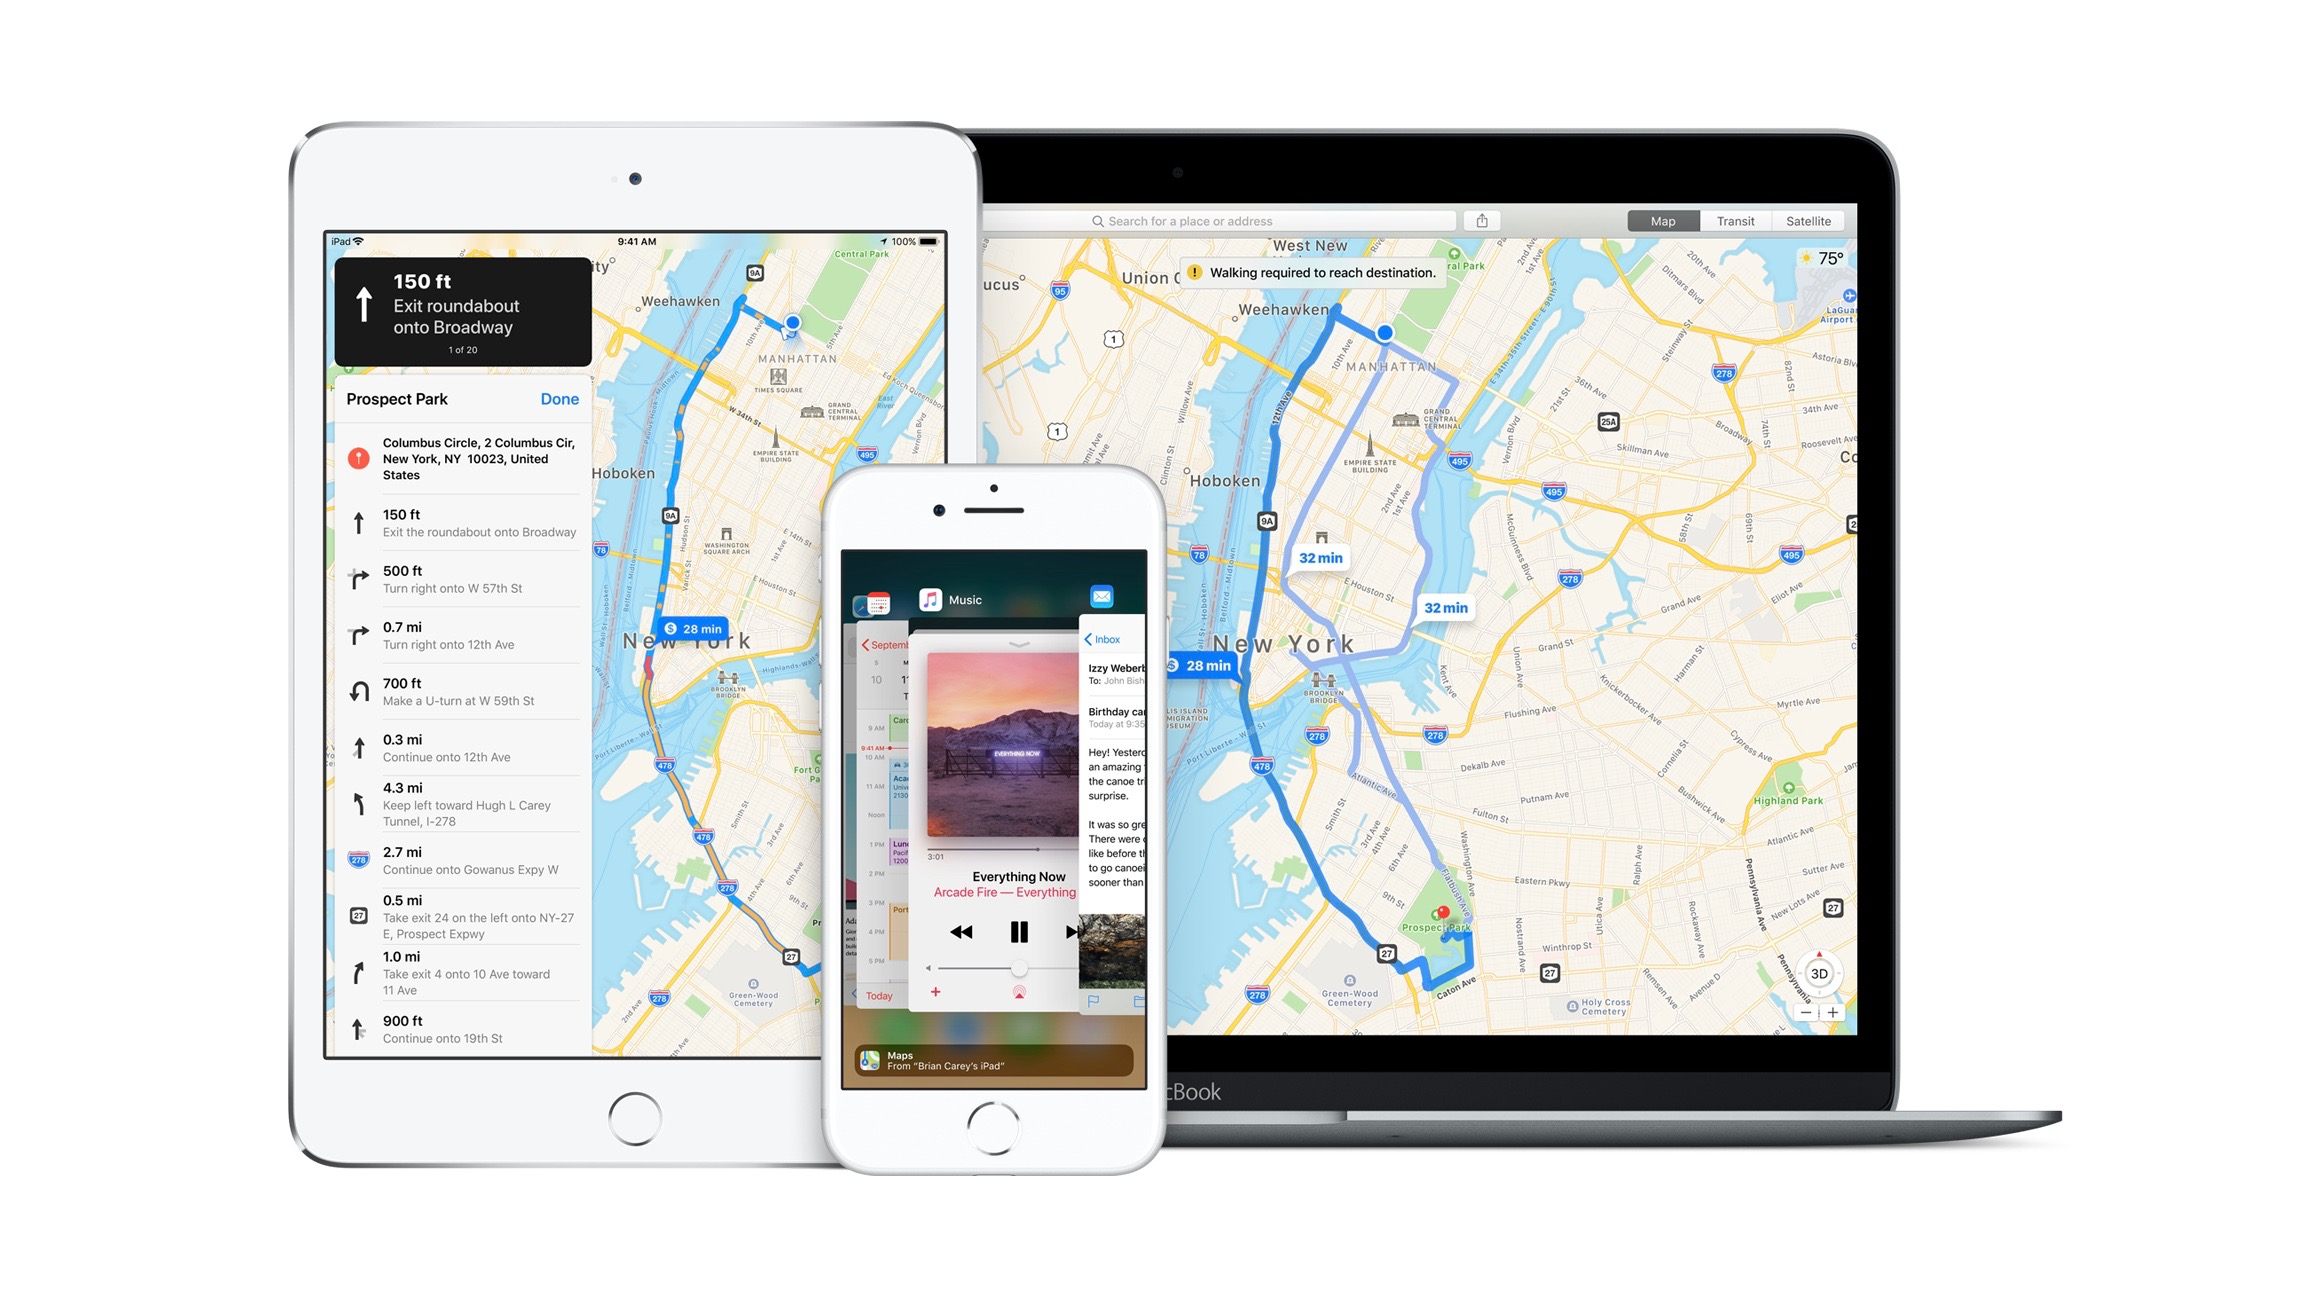 How to quickly share your current location on iPhone